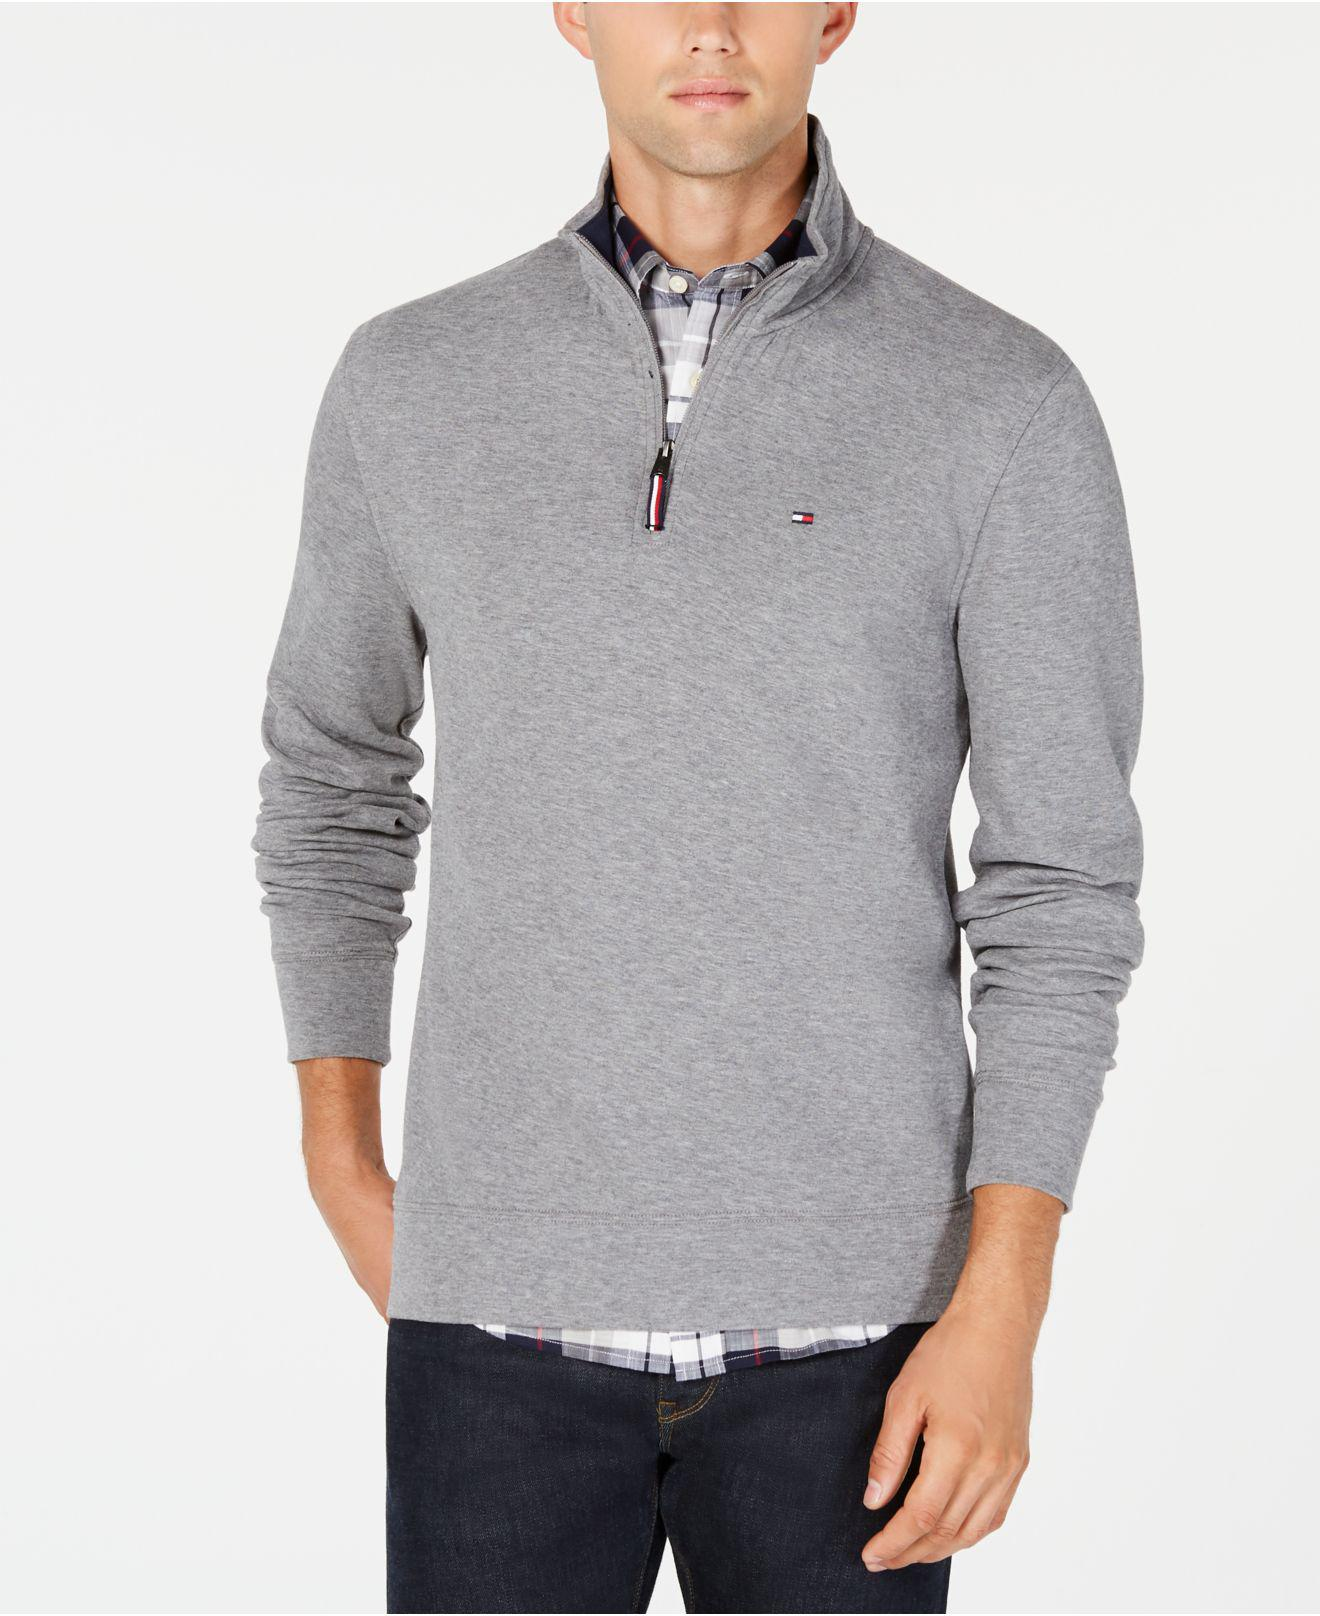 337275201 Lyst - Tommy Hilfiger Winston Mock-neck Sweater